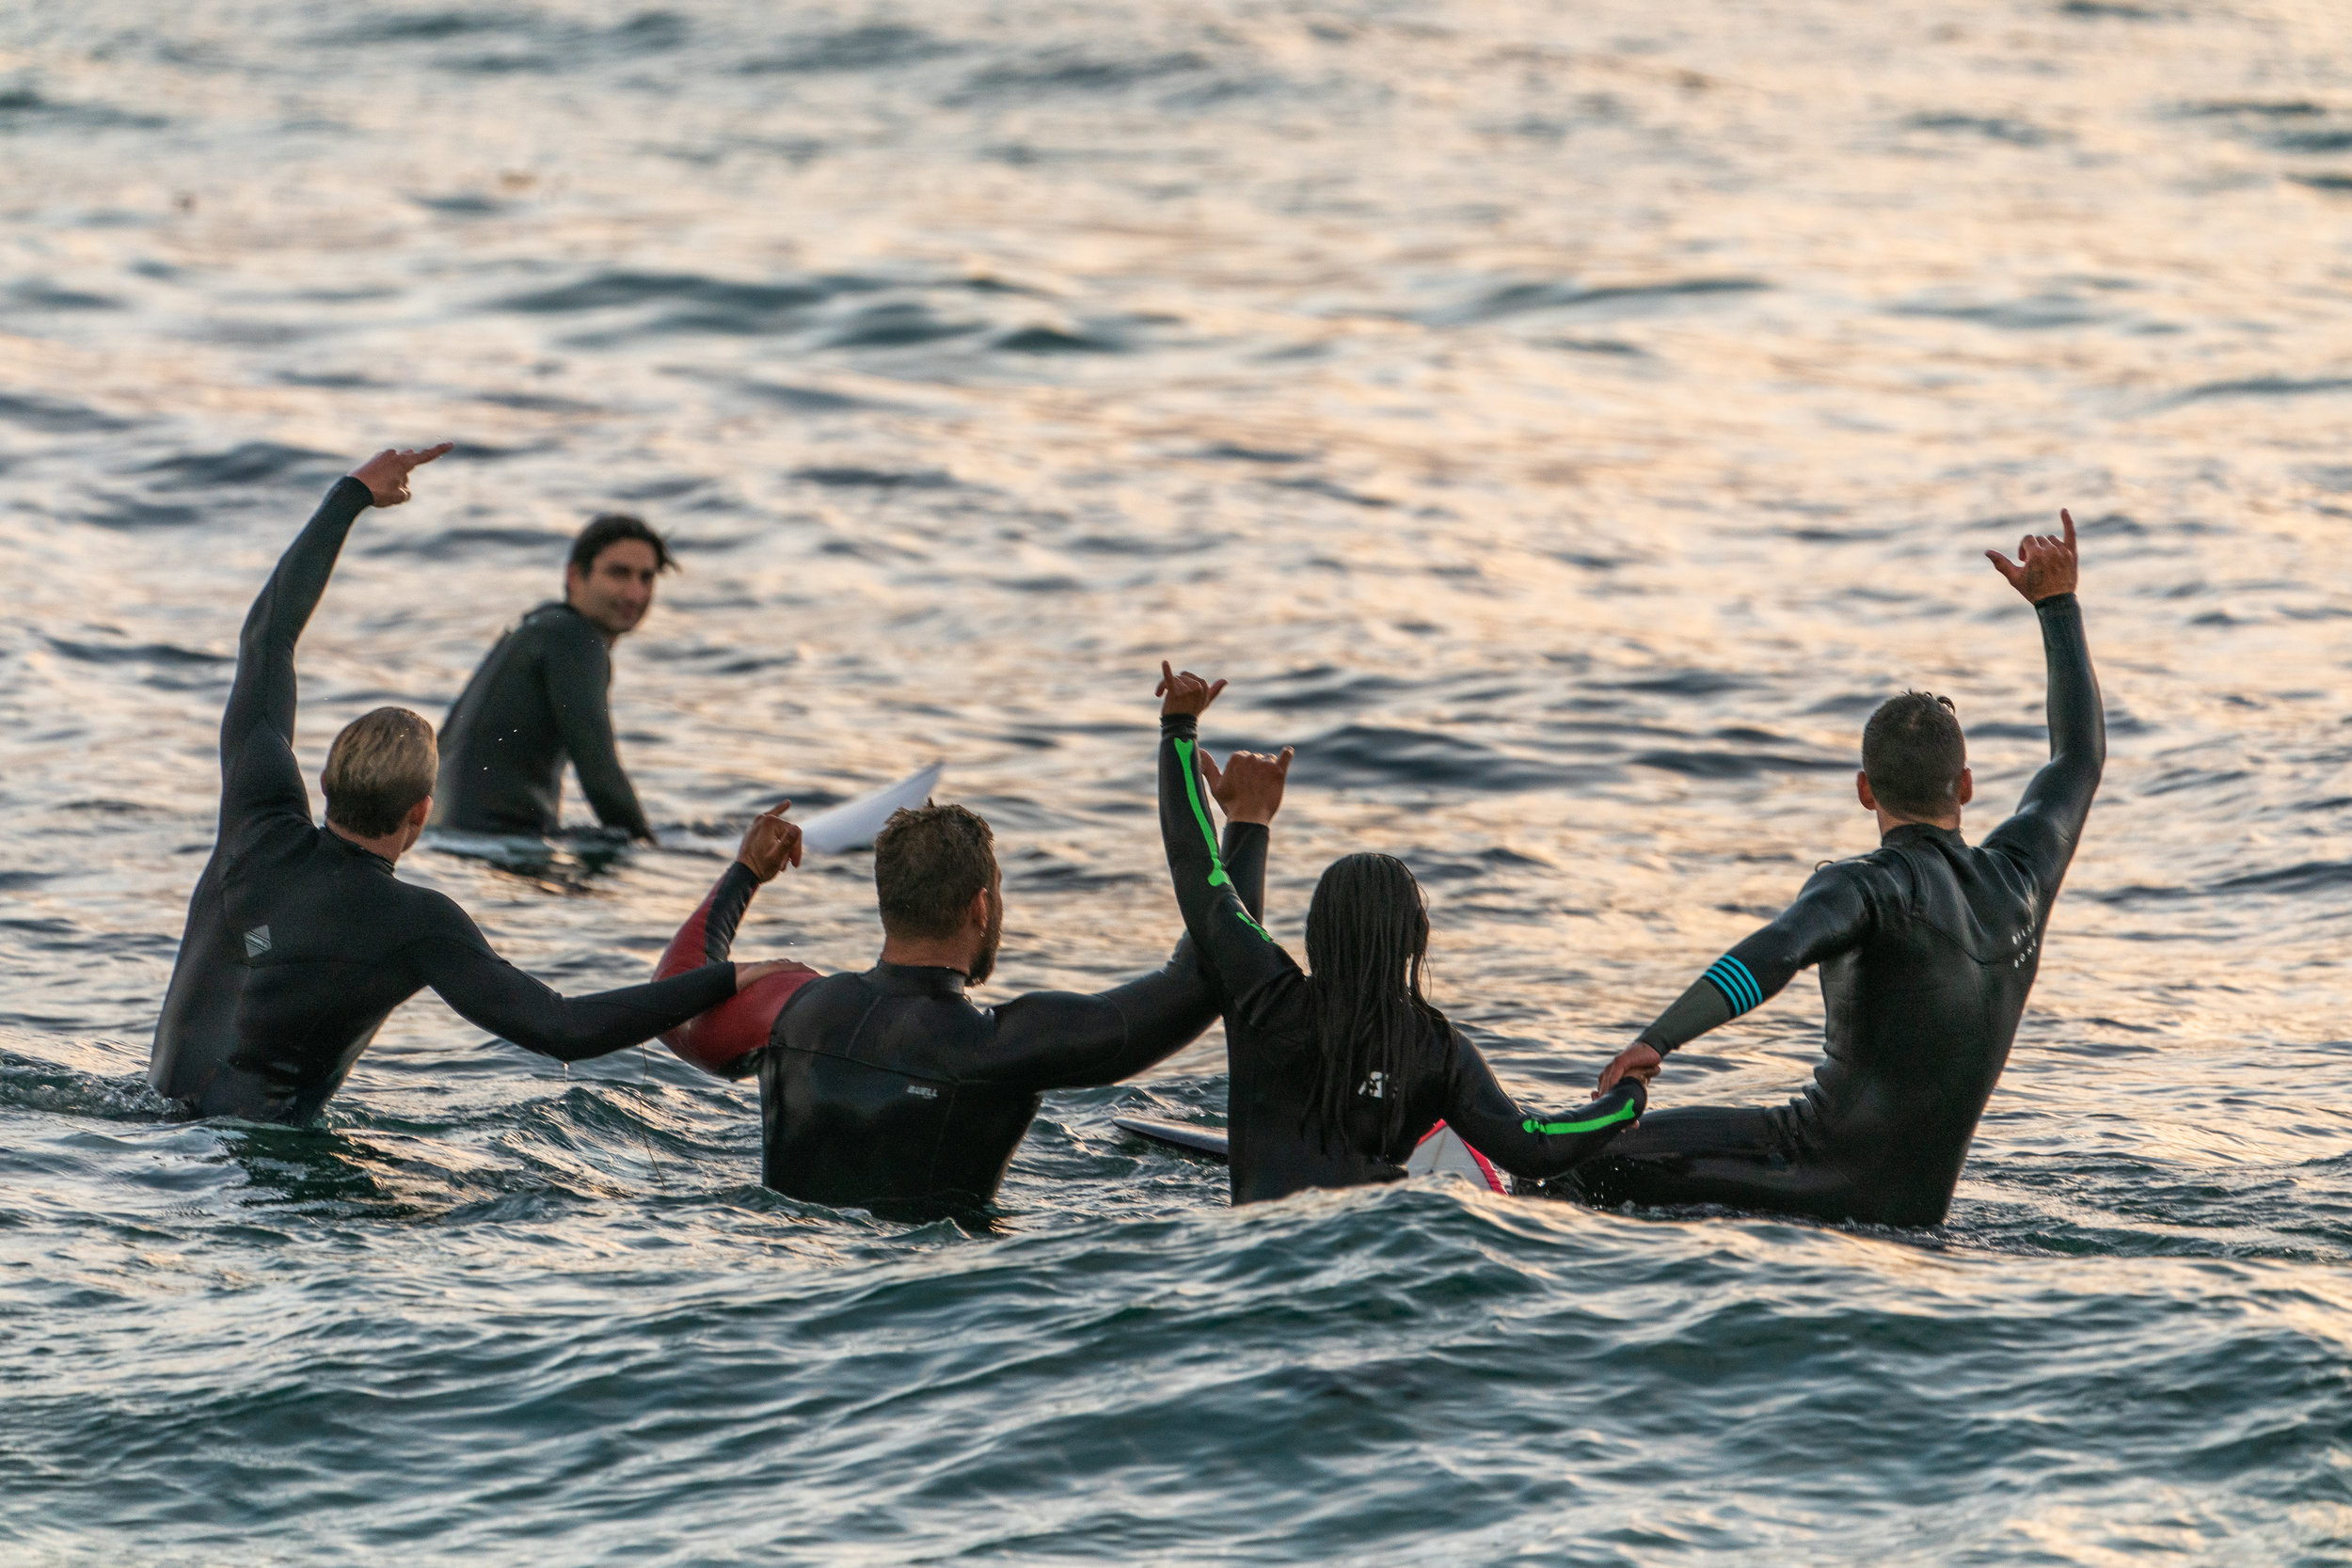 Every week they go surfing together, they raise $5 for the Challenged Athletes Foundation -